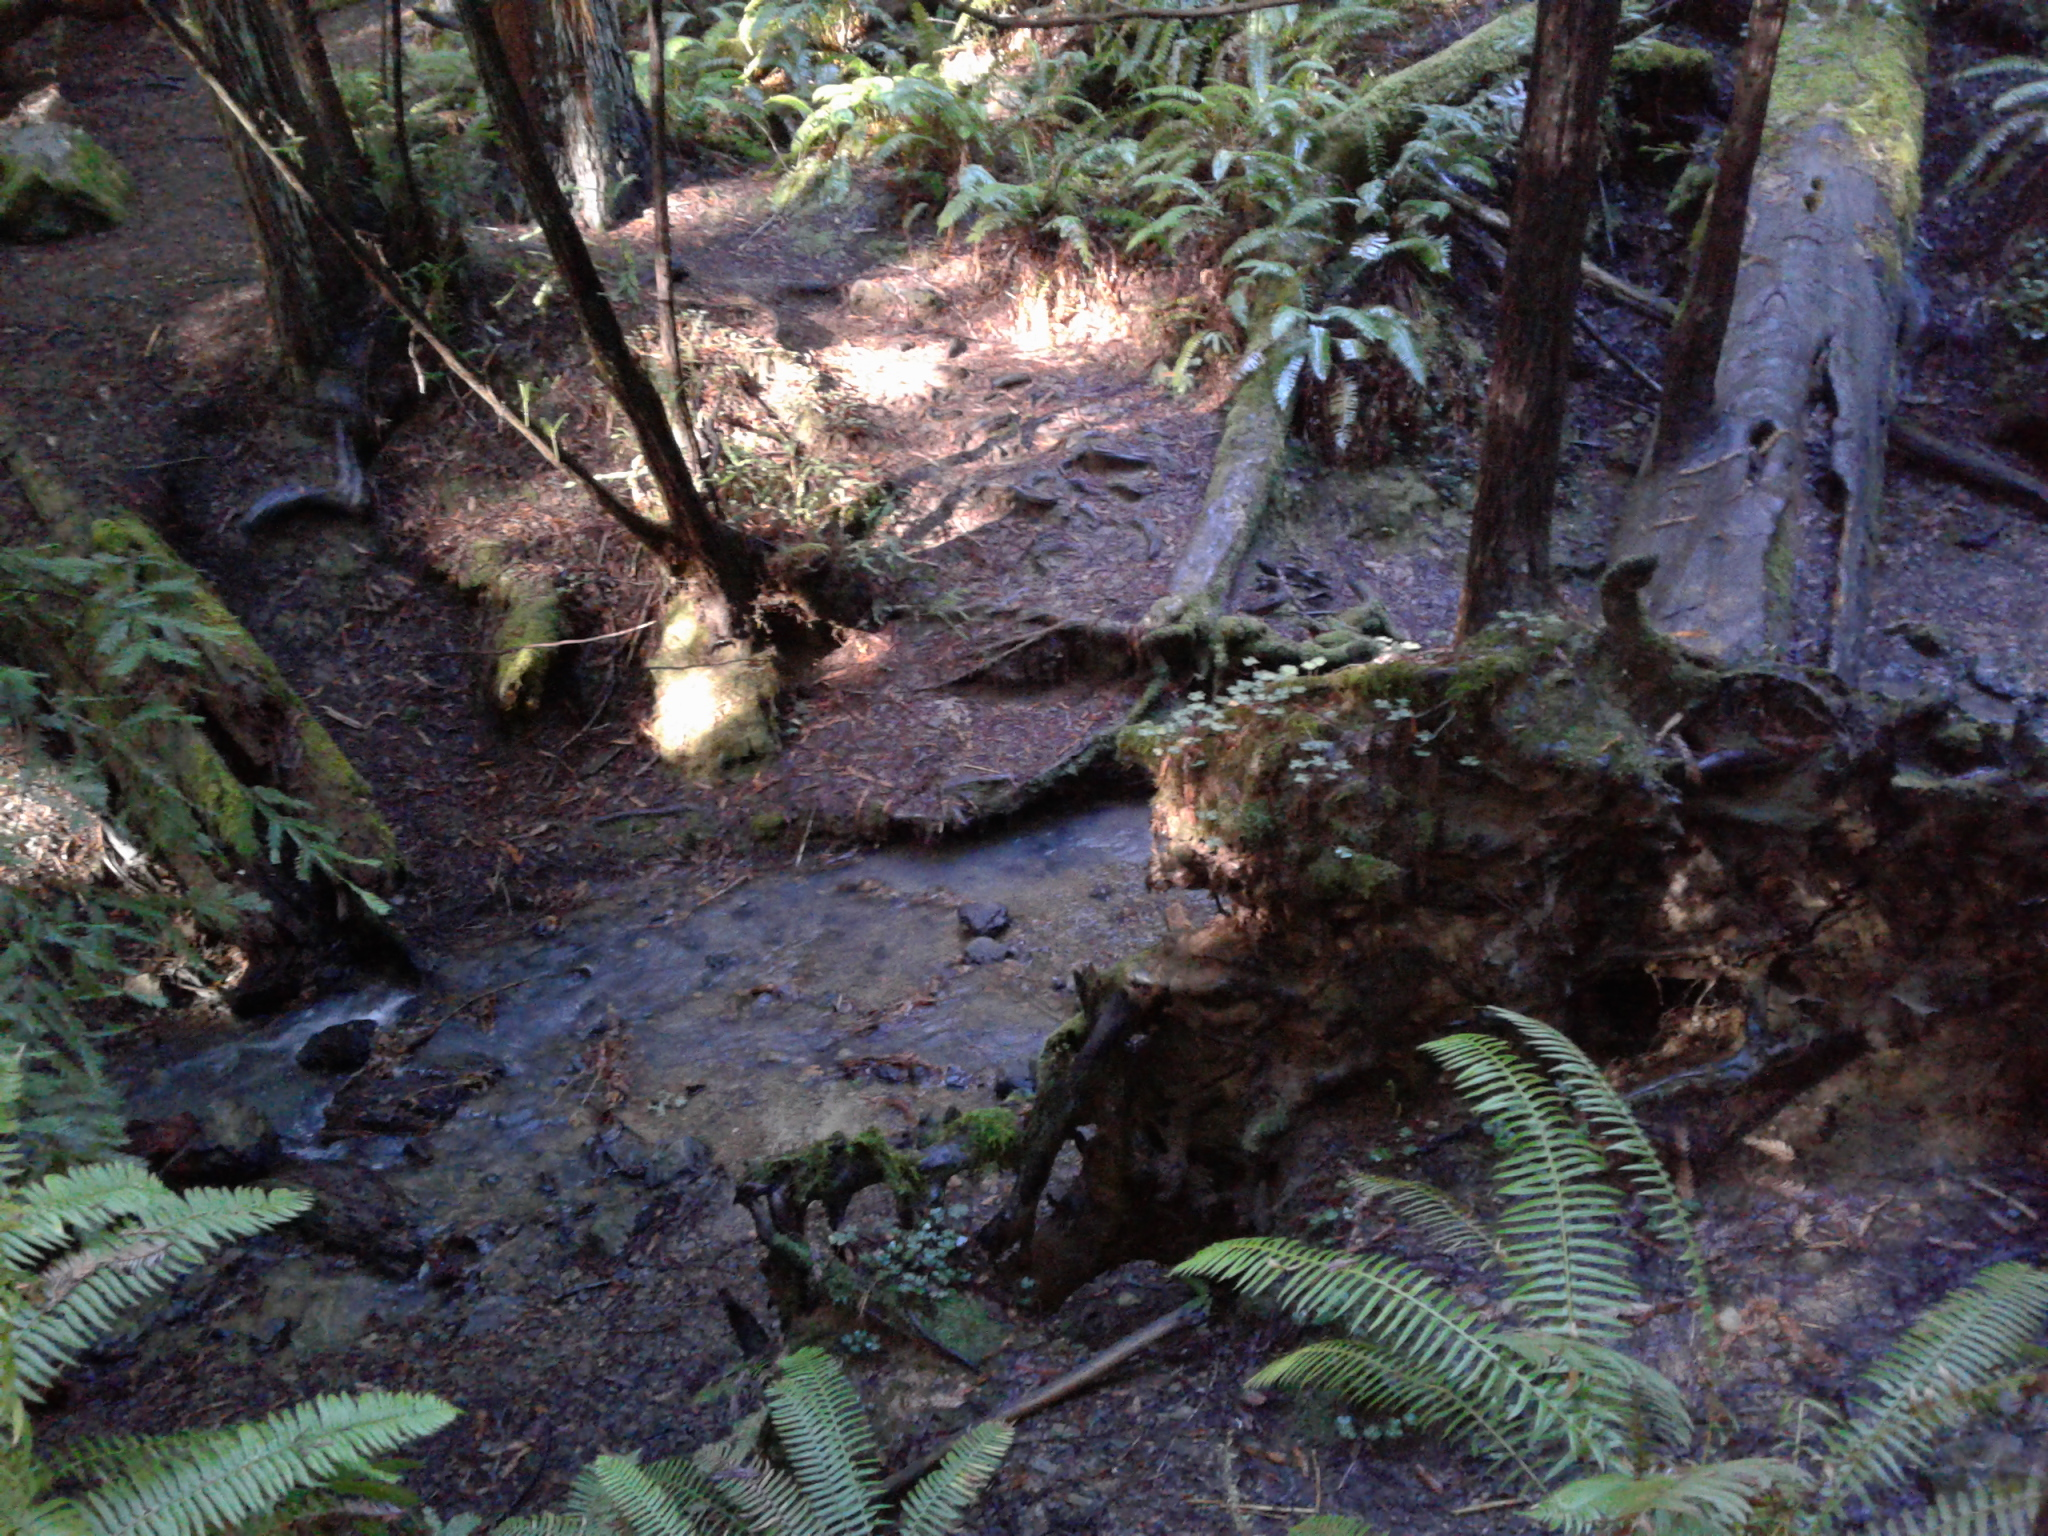 Old Growth stand at Chamberlian Creek, Mendocino County, CA. Image credit: Kyra Rice